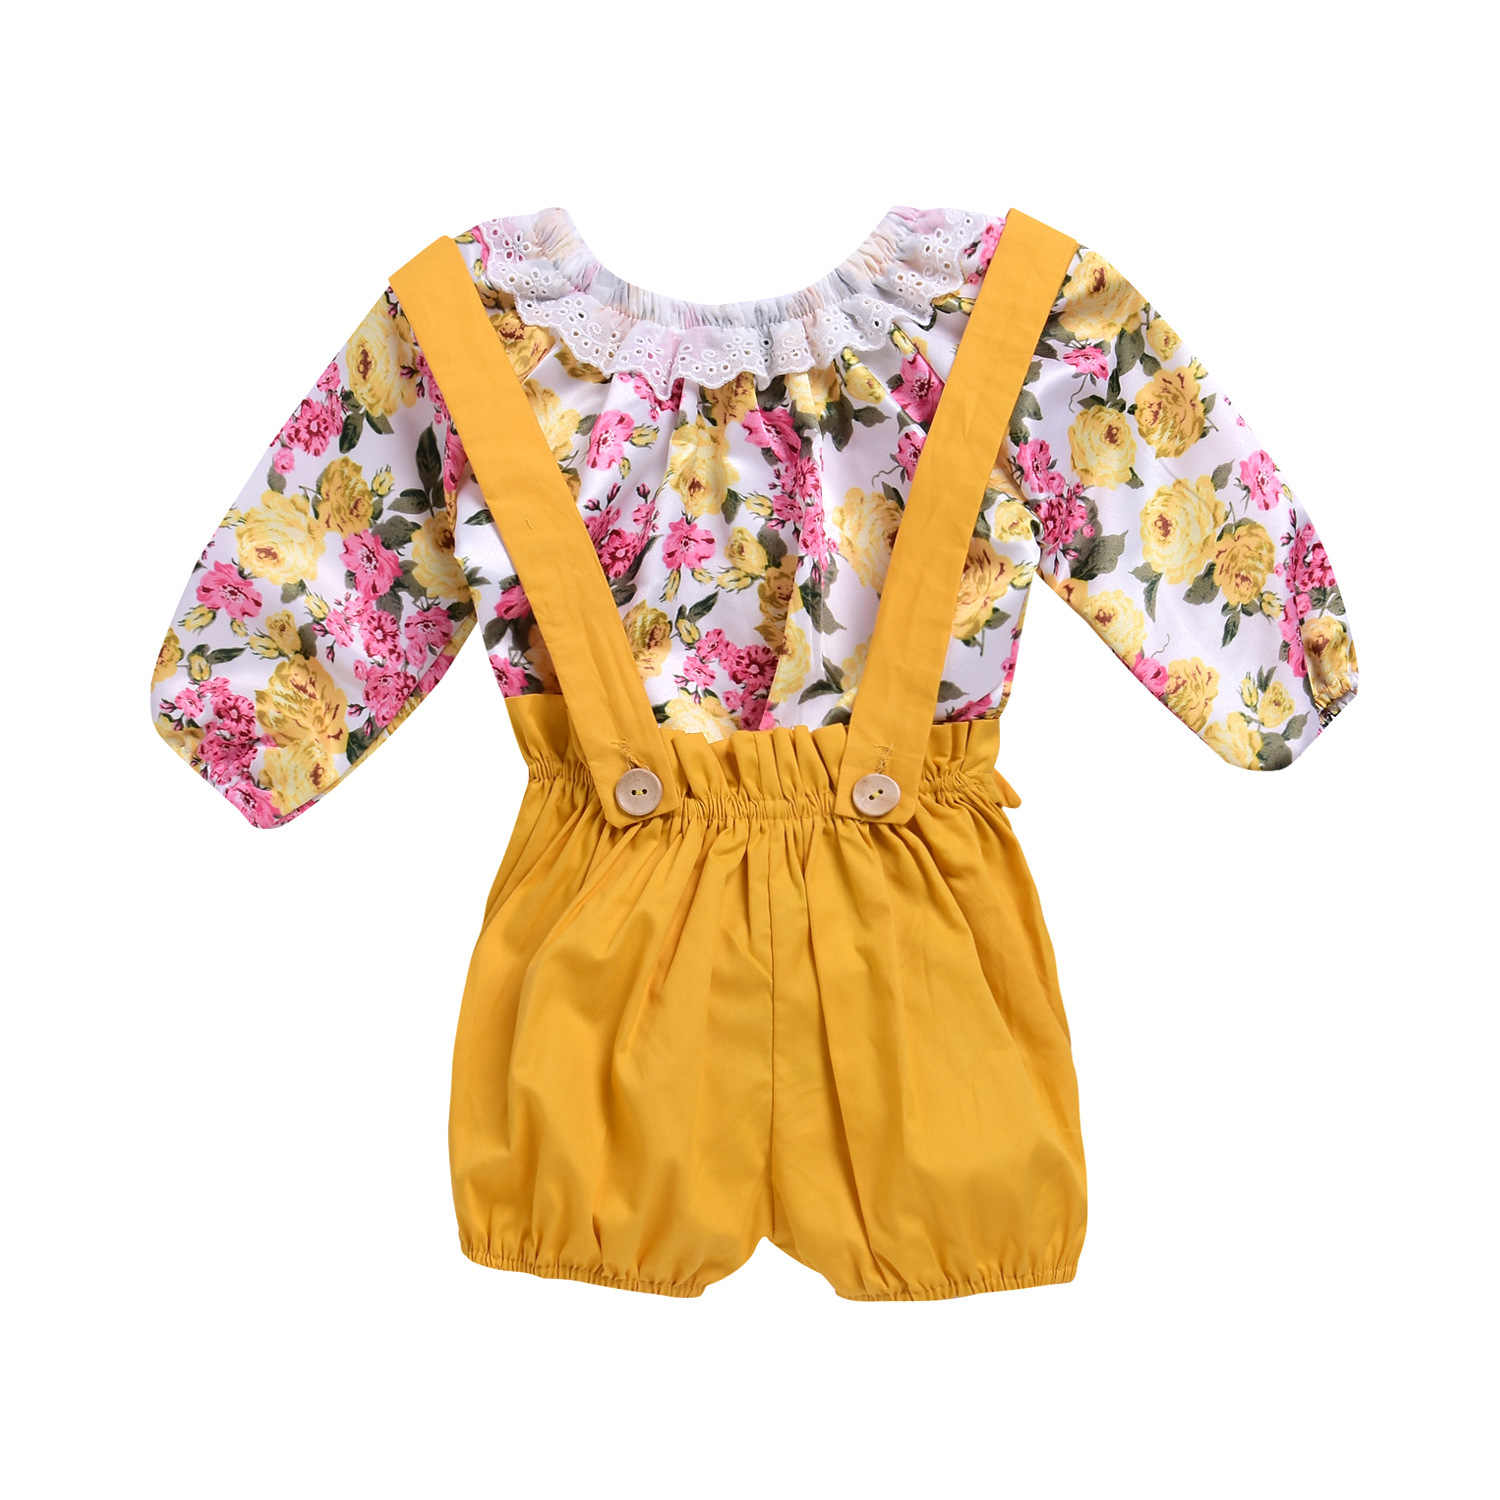 a08e70eaa Kids Baby Girls Floral Bodysuit Tops Yellow Suspender Overall Outfits  Toddler 2018 Summer Headband Outfits 2Pcs